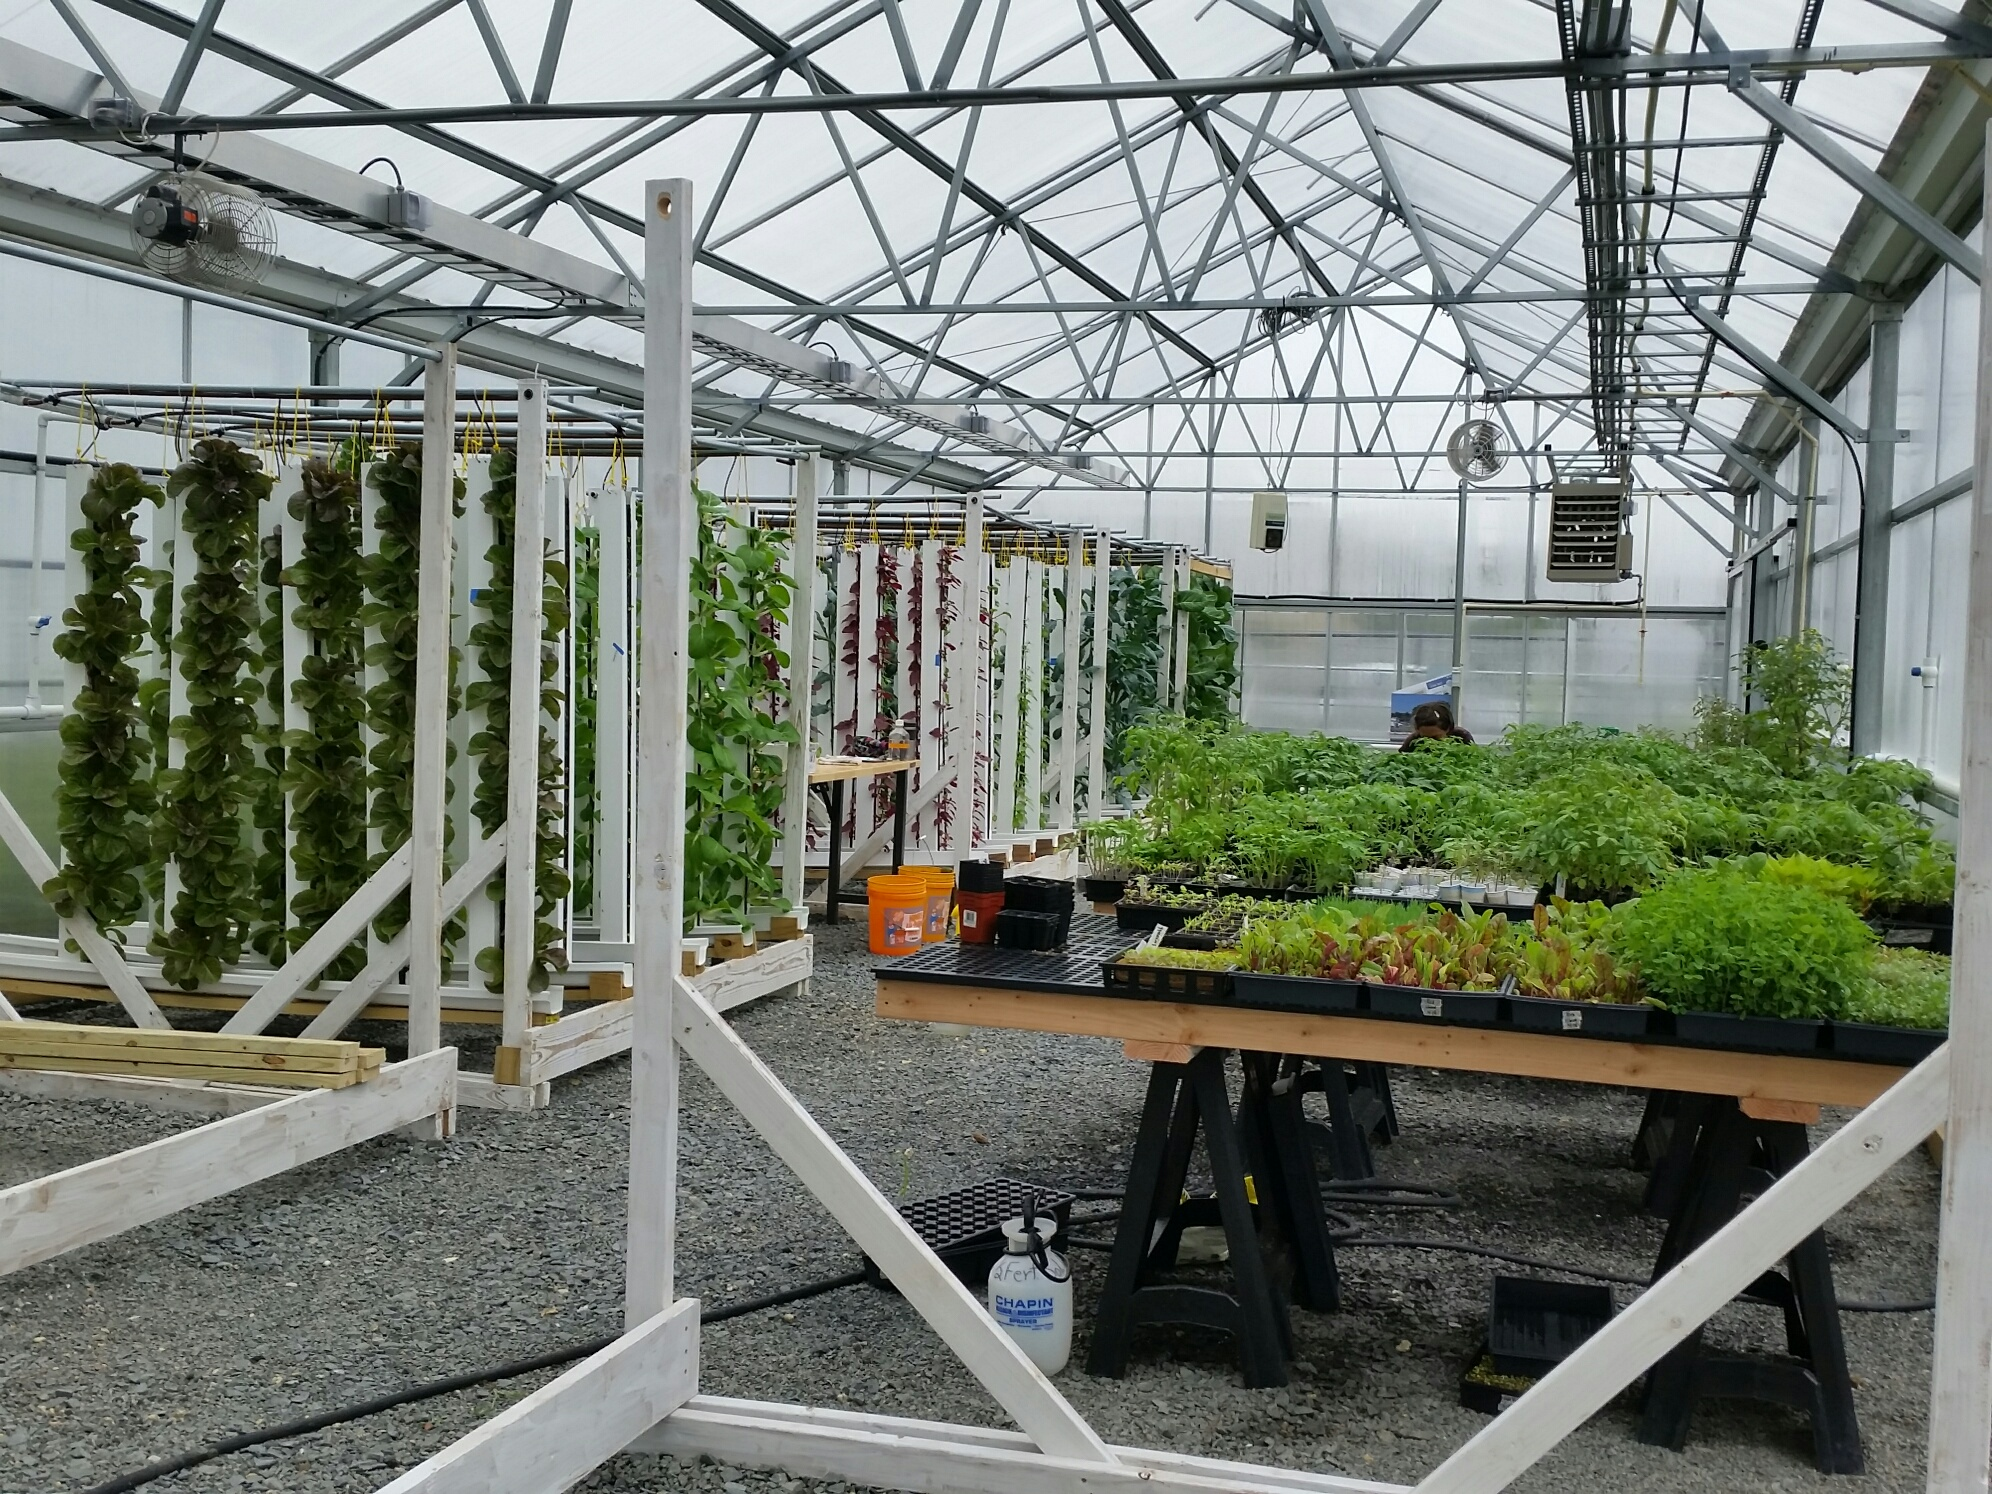 Kula Farm Inside Greenhouse